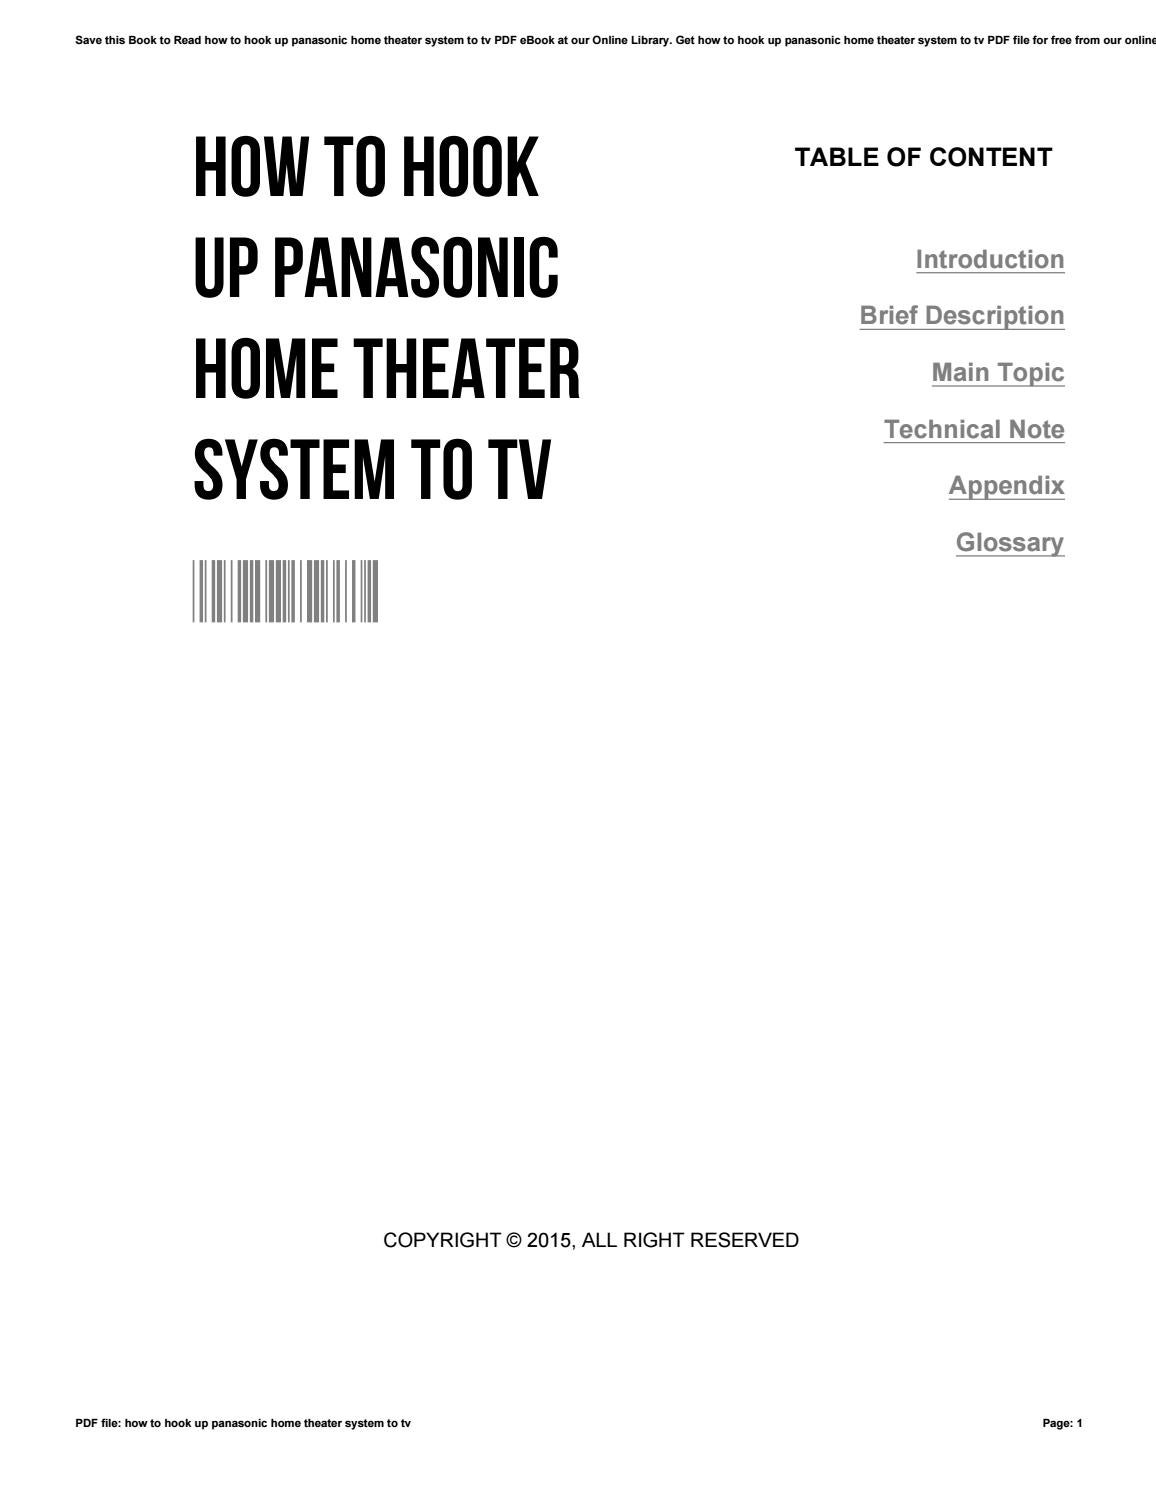 How to hook up panasonic home theater system to tv by